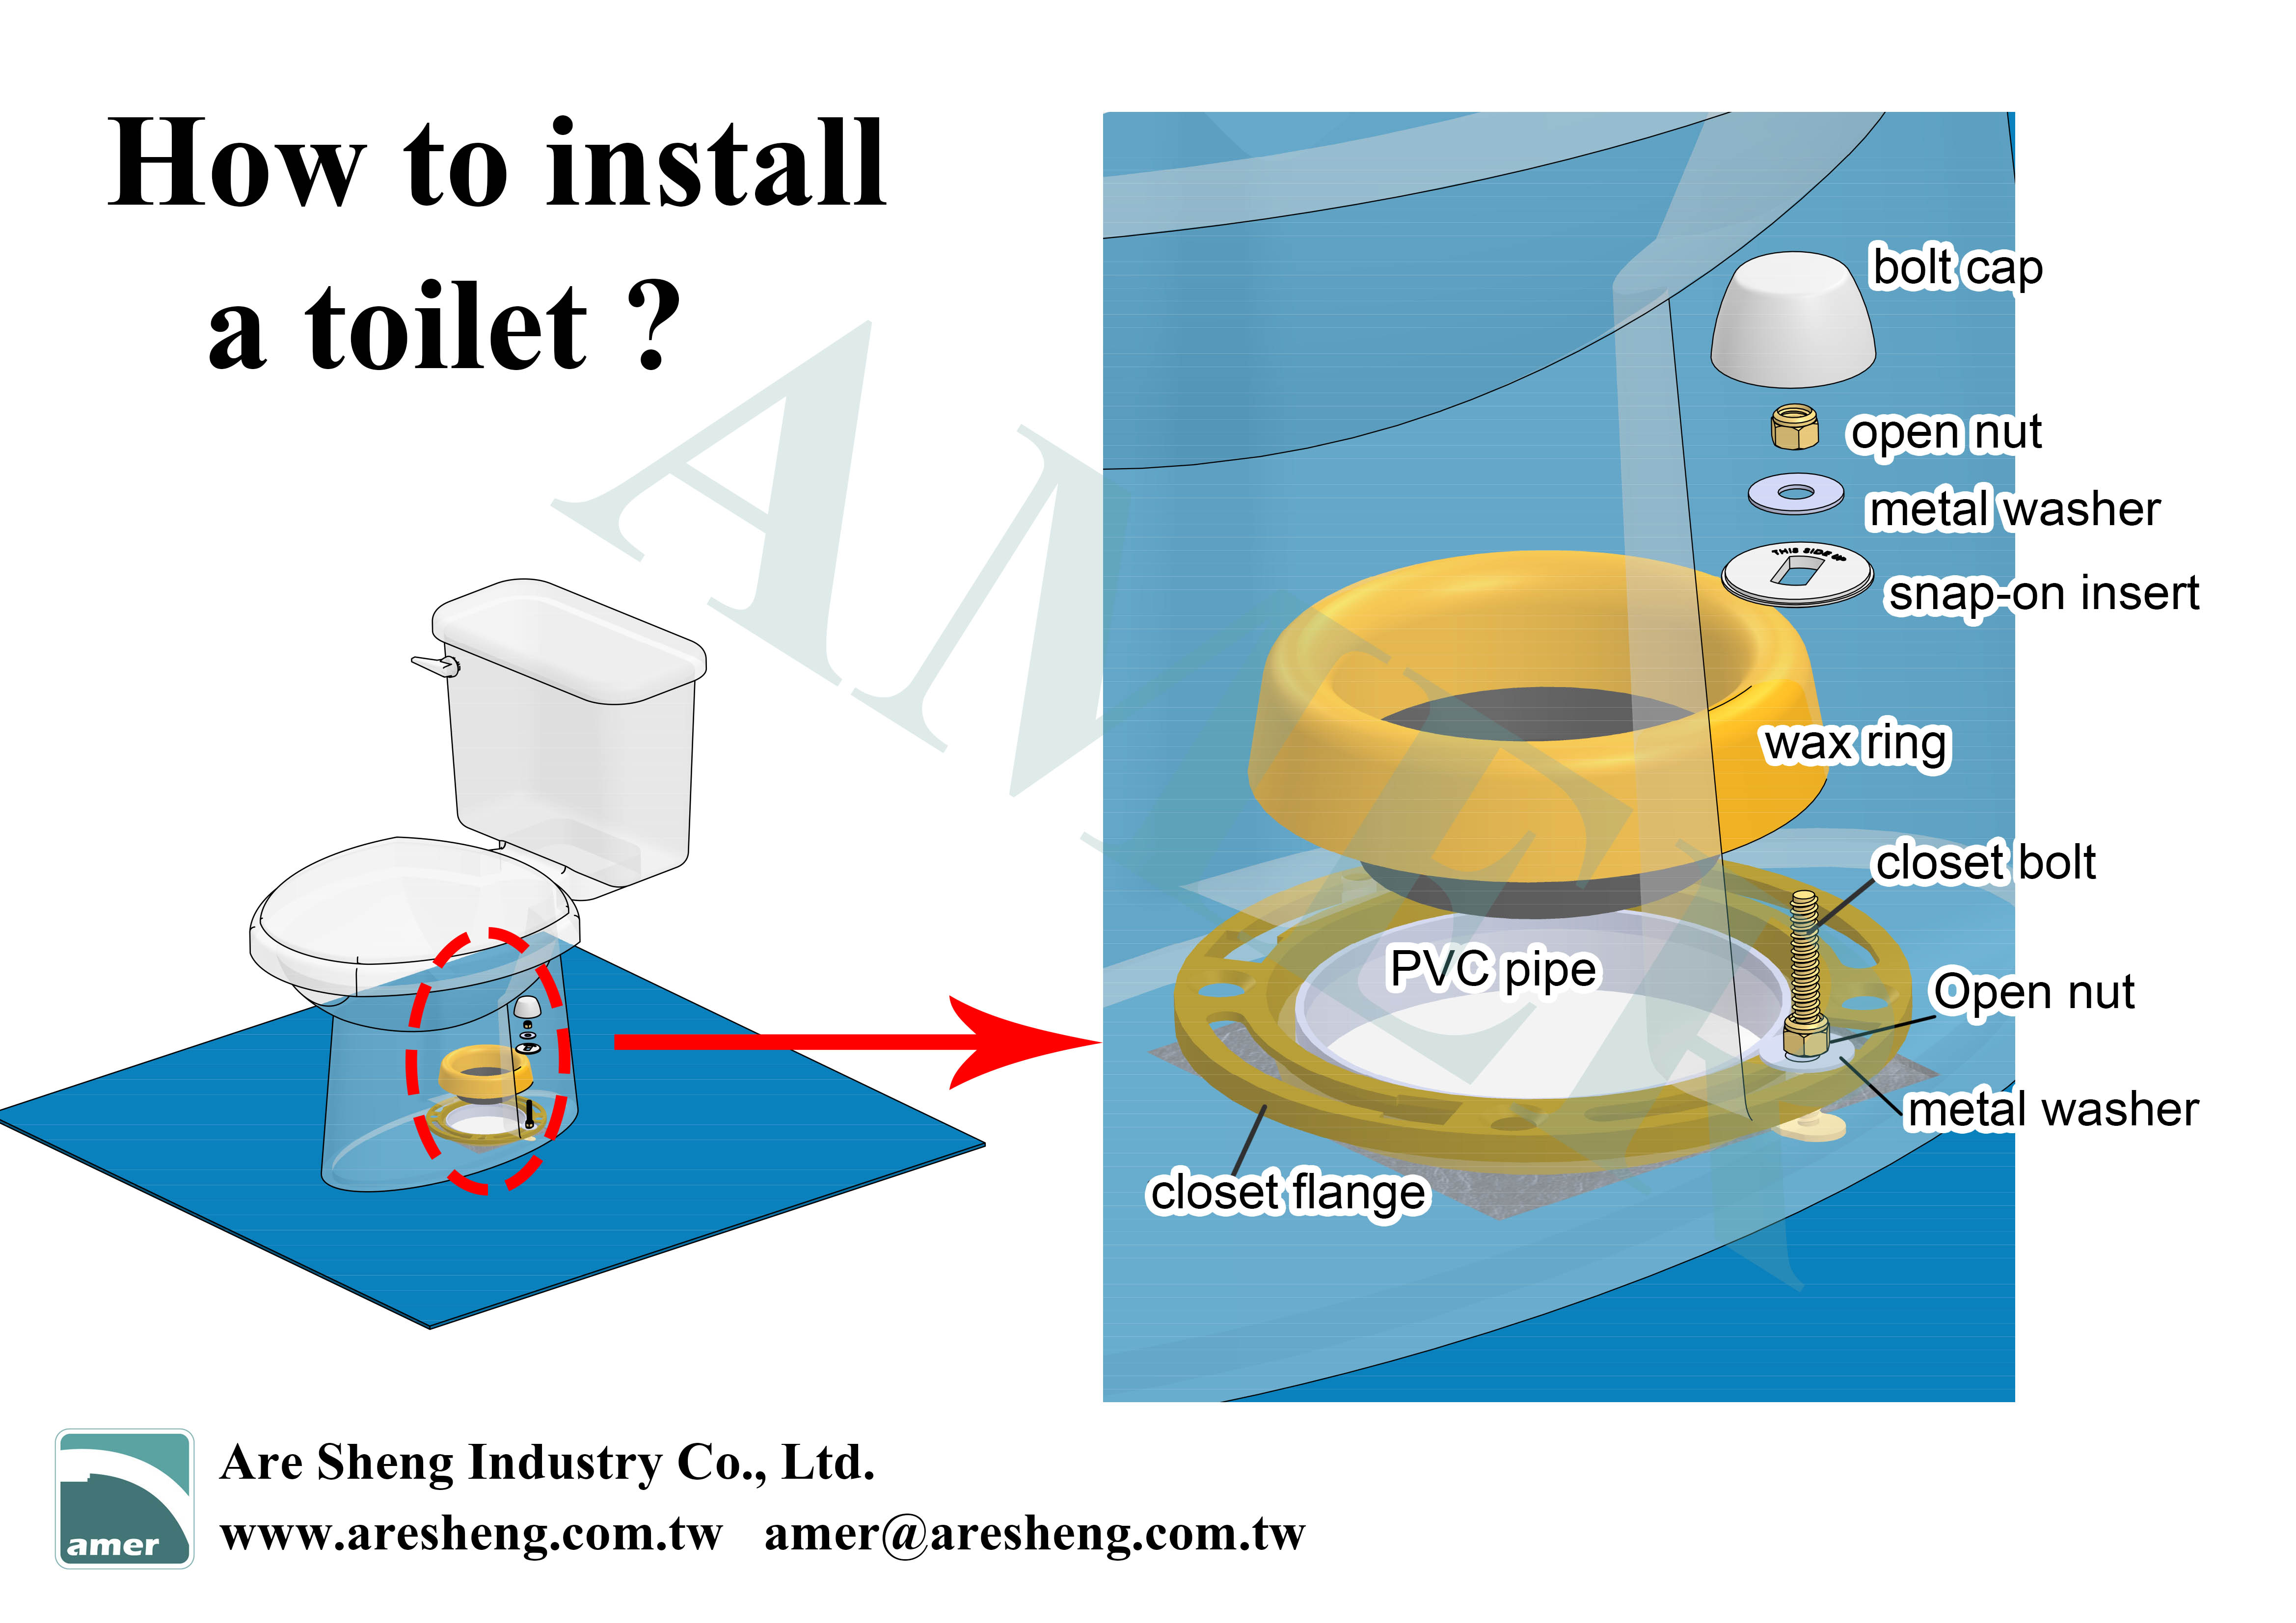 How to install a toilet by yourself